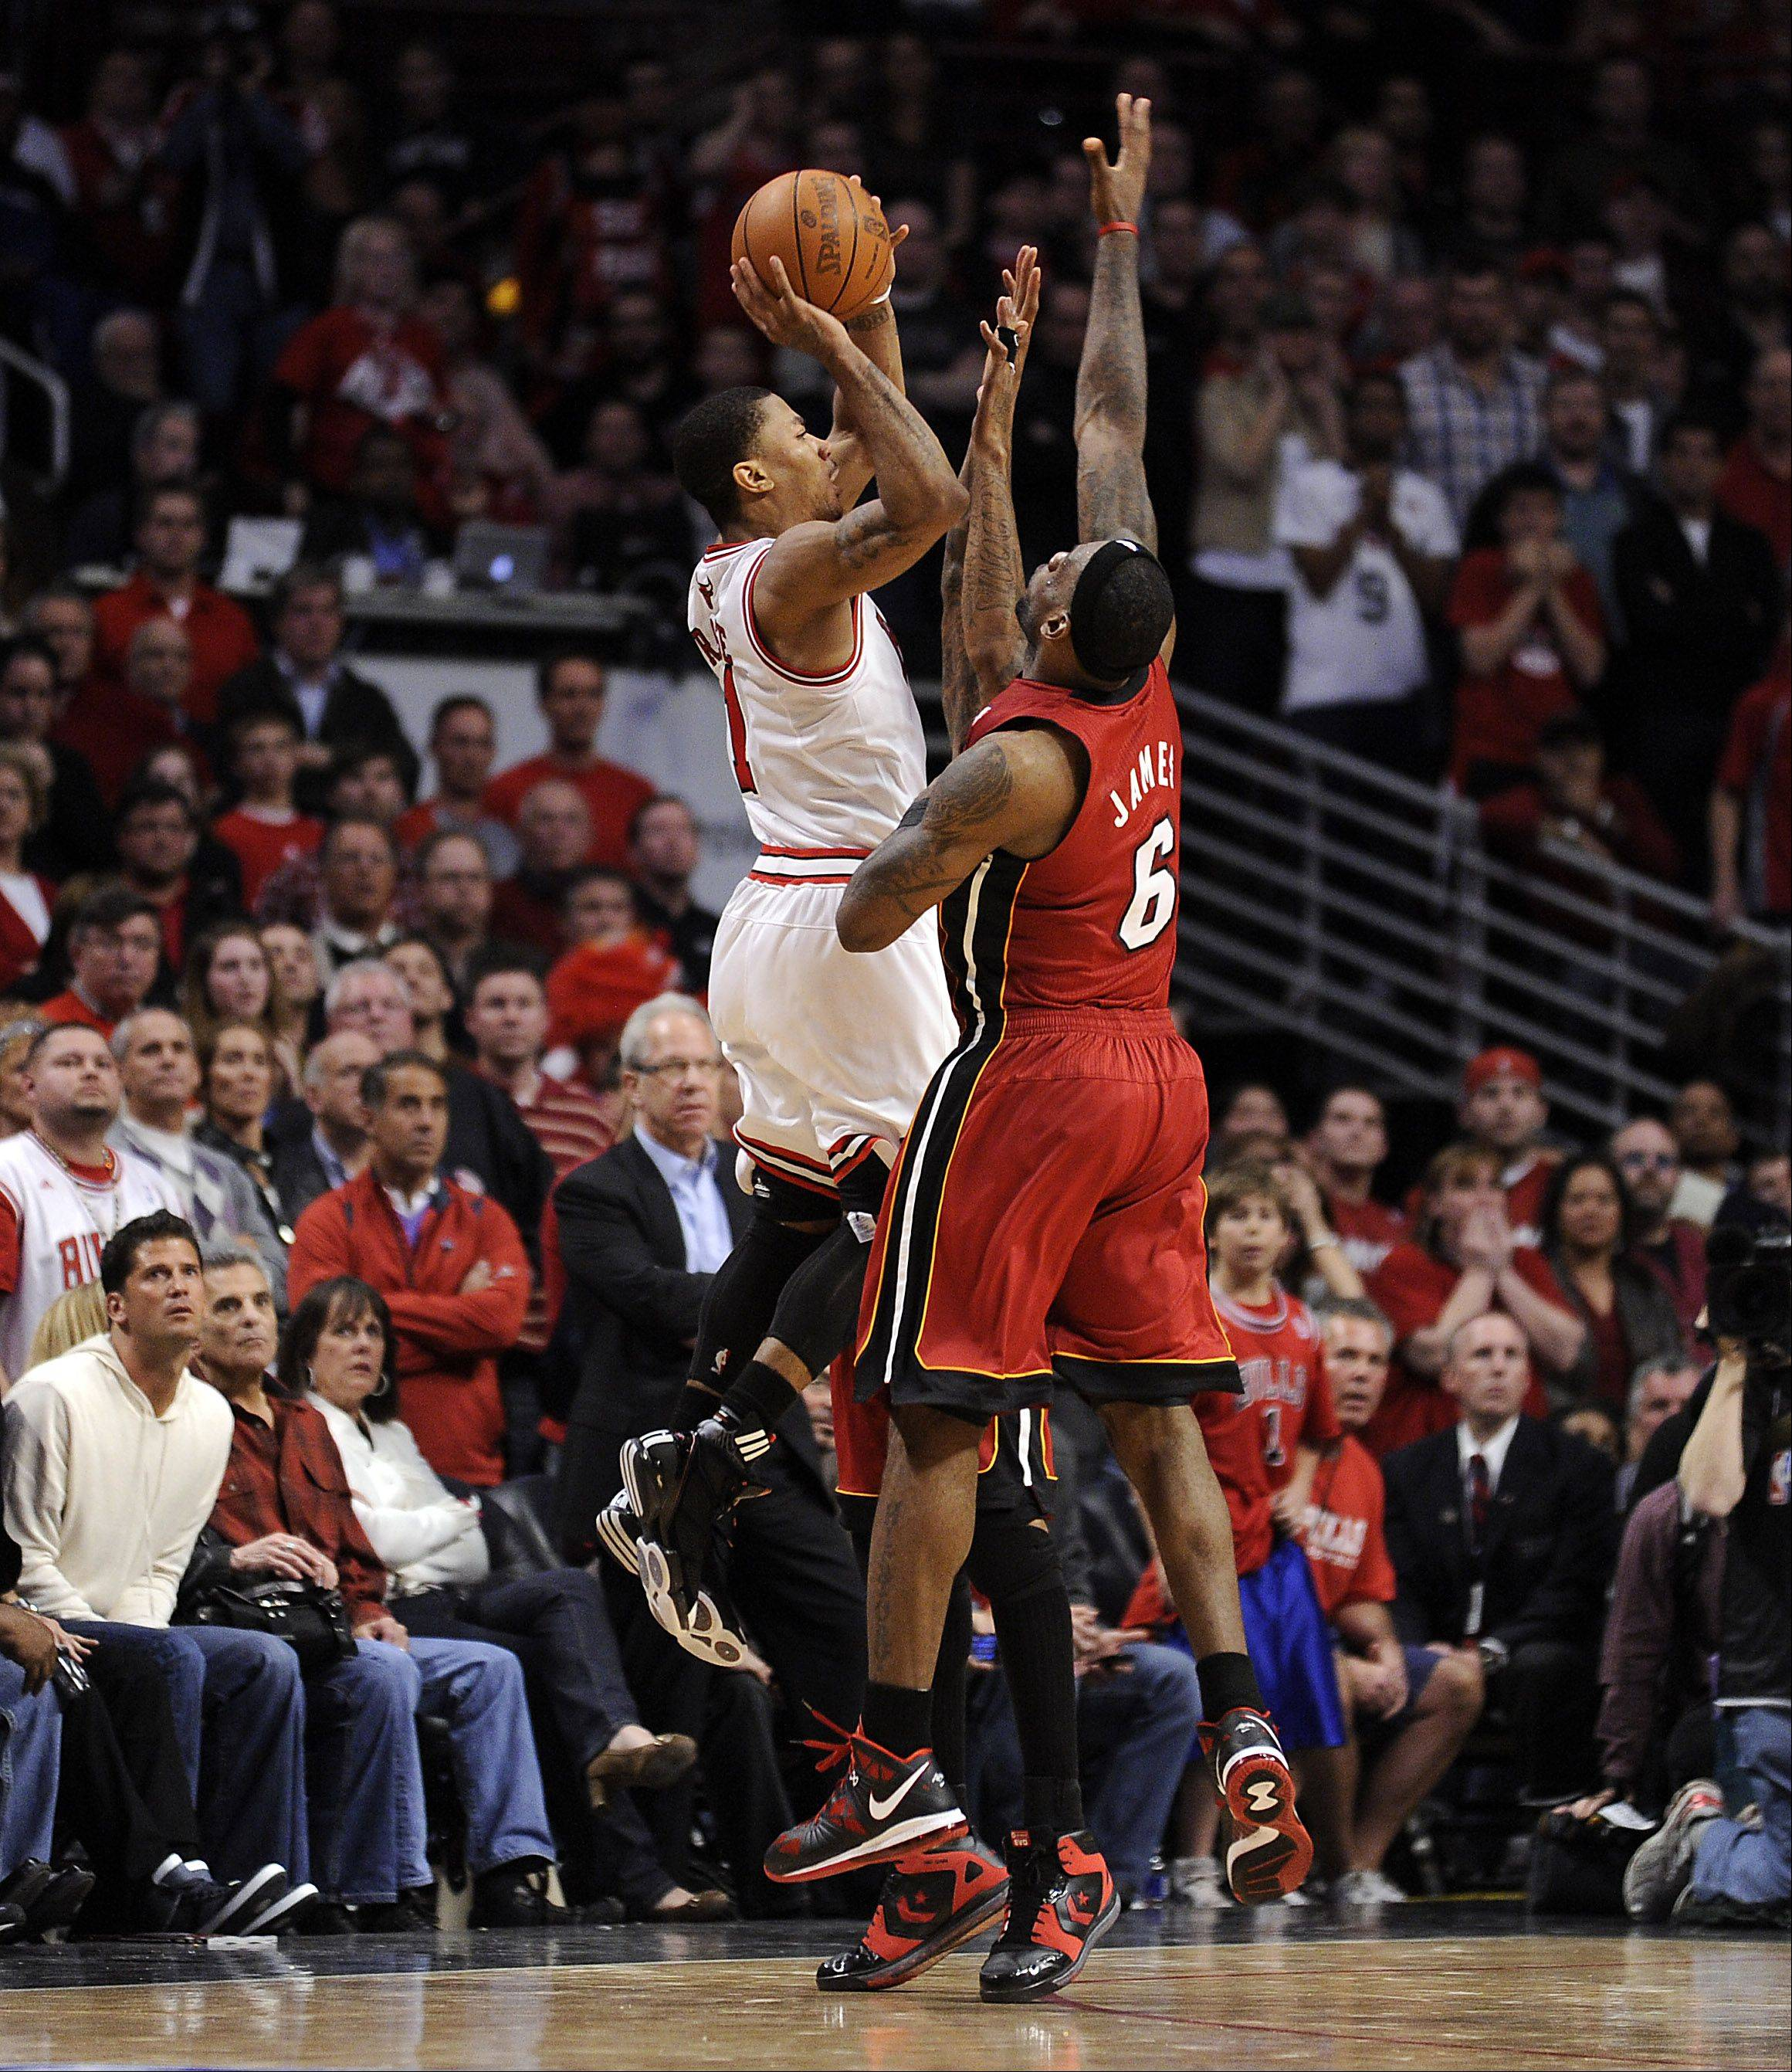 The Bulls' Derrick Rose attempts a last-second shot that the Heat's LeBron James blocks.